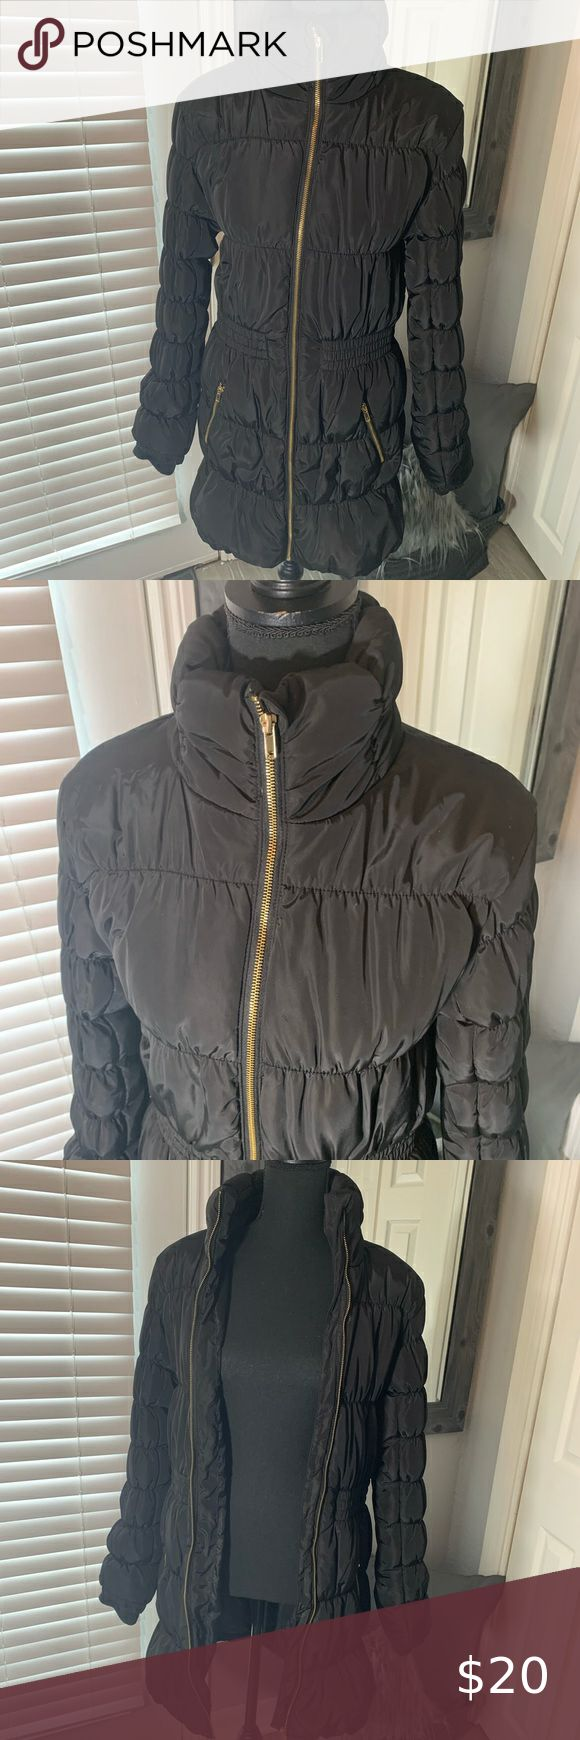 H&M Black Puffer Down Coat Jacket Size 14 Youth in 2020